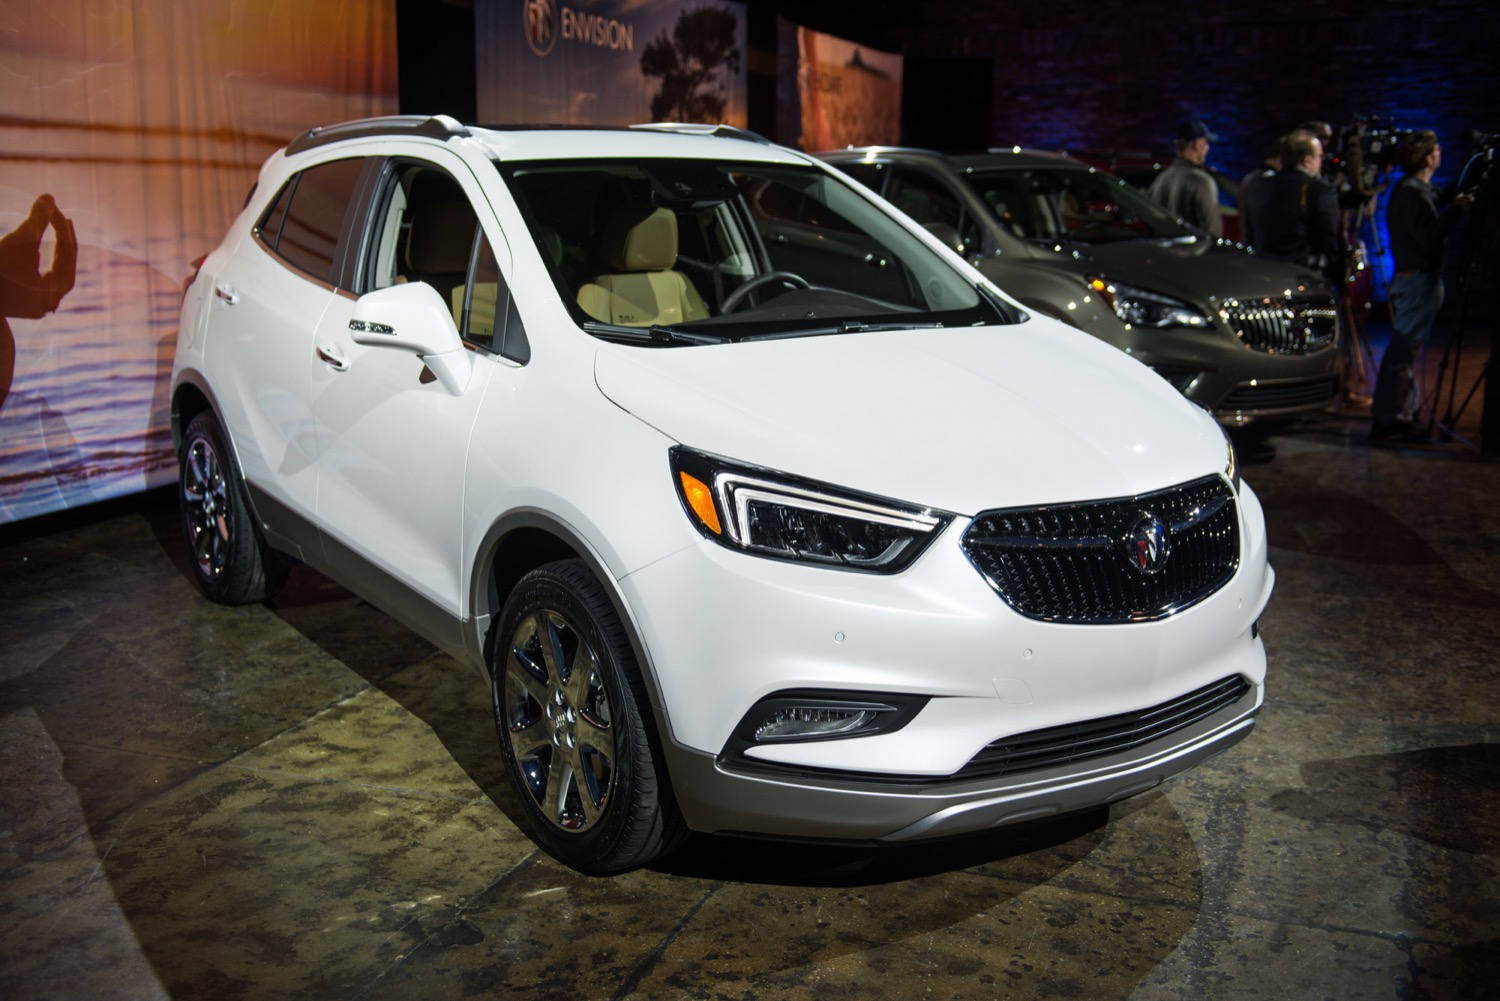 Buick Encore Discount Totals $4,250 In January 2020 | Gm New 2022 Buick Encore Essence Price, Interior, Dimensions